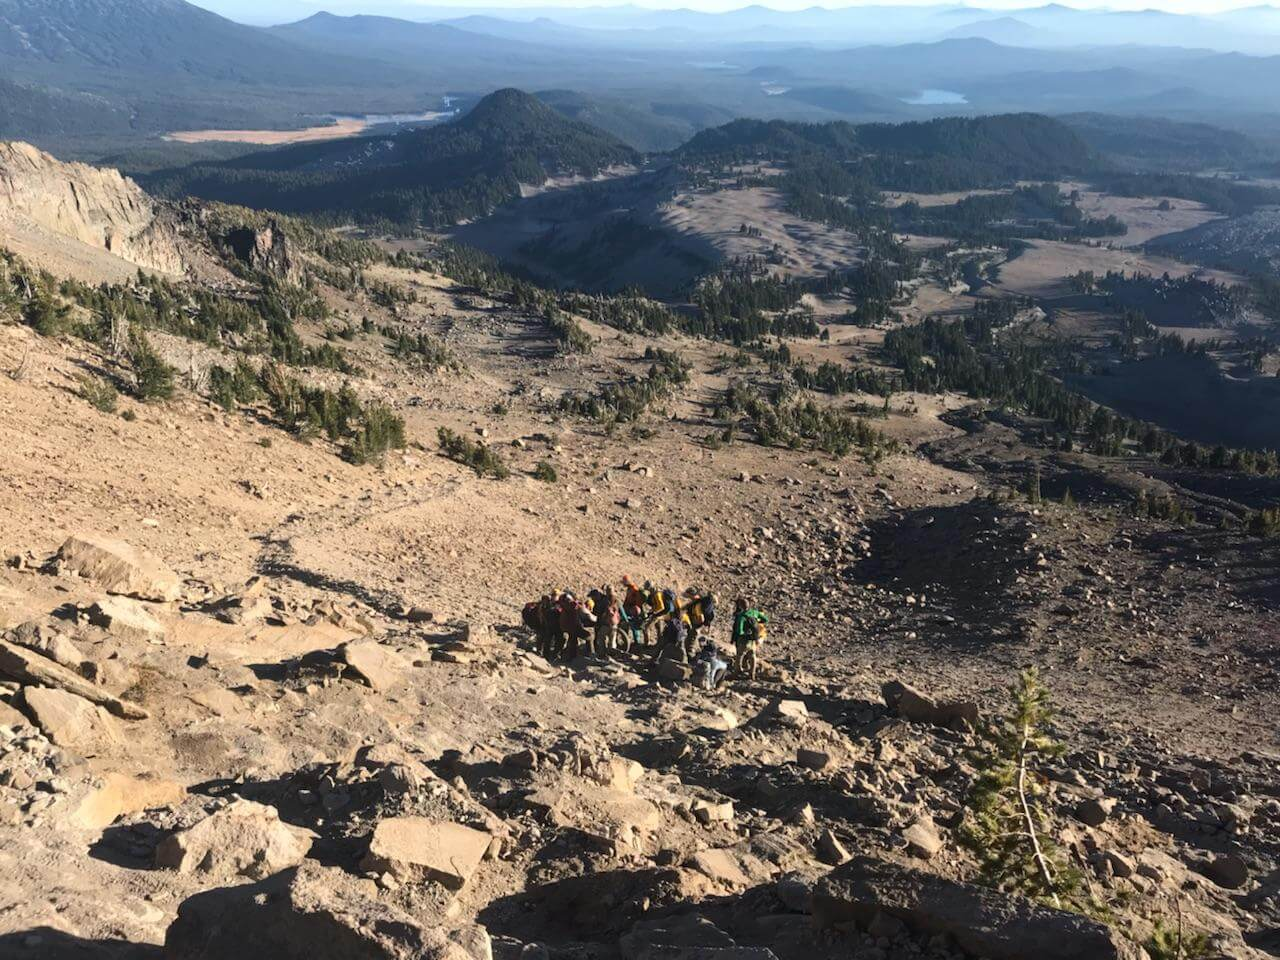 INJURED HIKER NEAR SOUTH SISTER